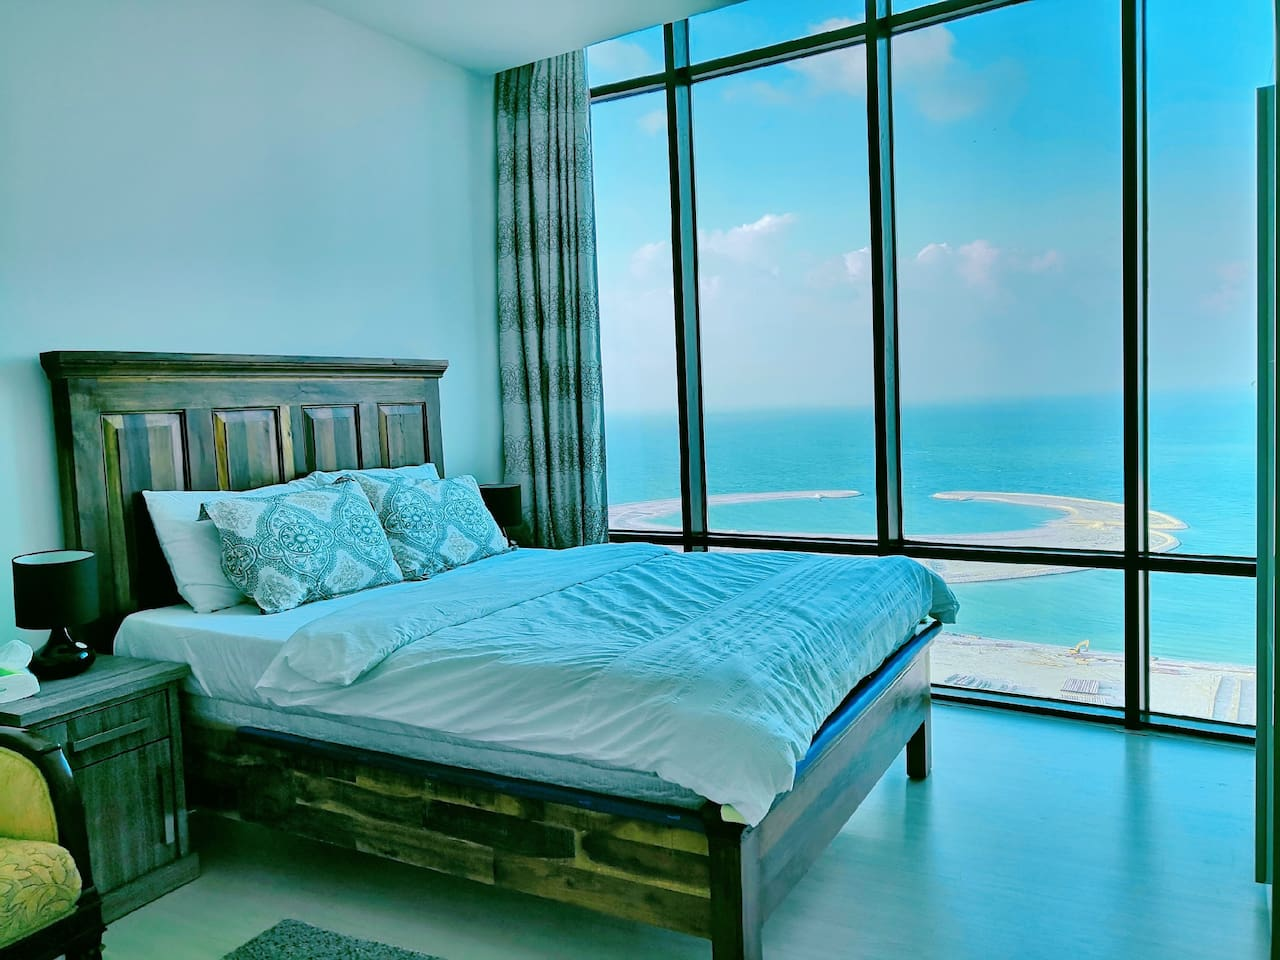 You'll have a good sleep with the quiet and peaceful great sea view